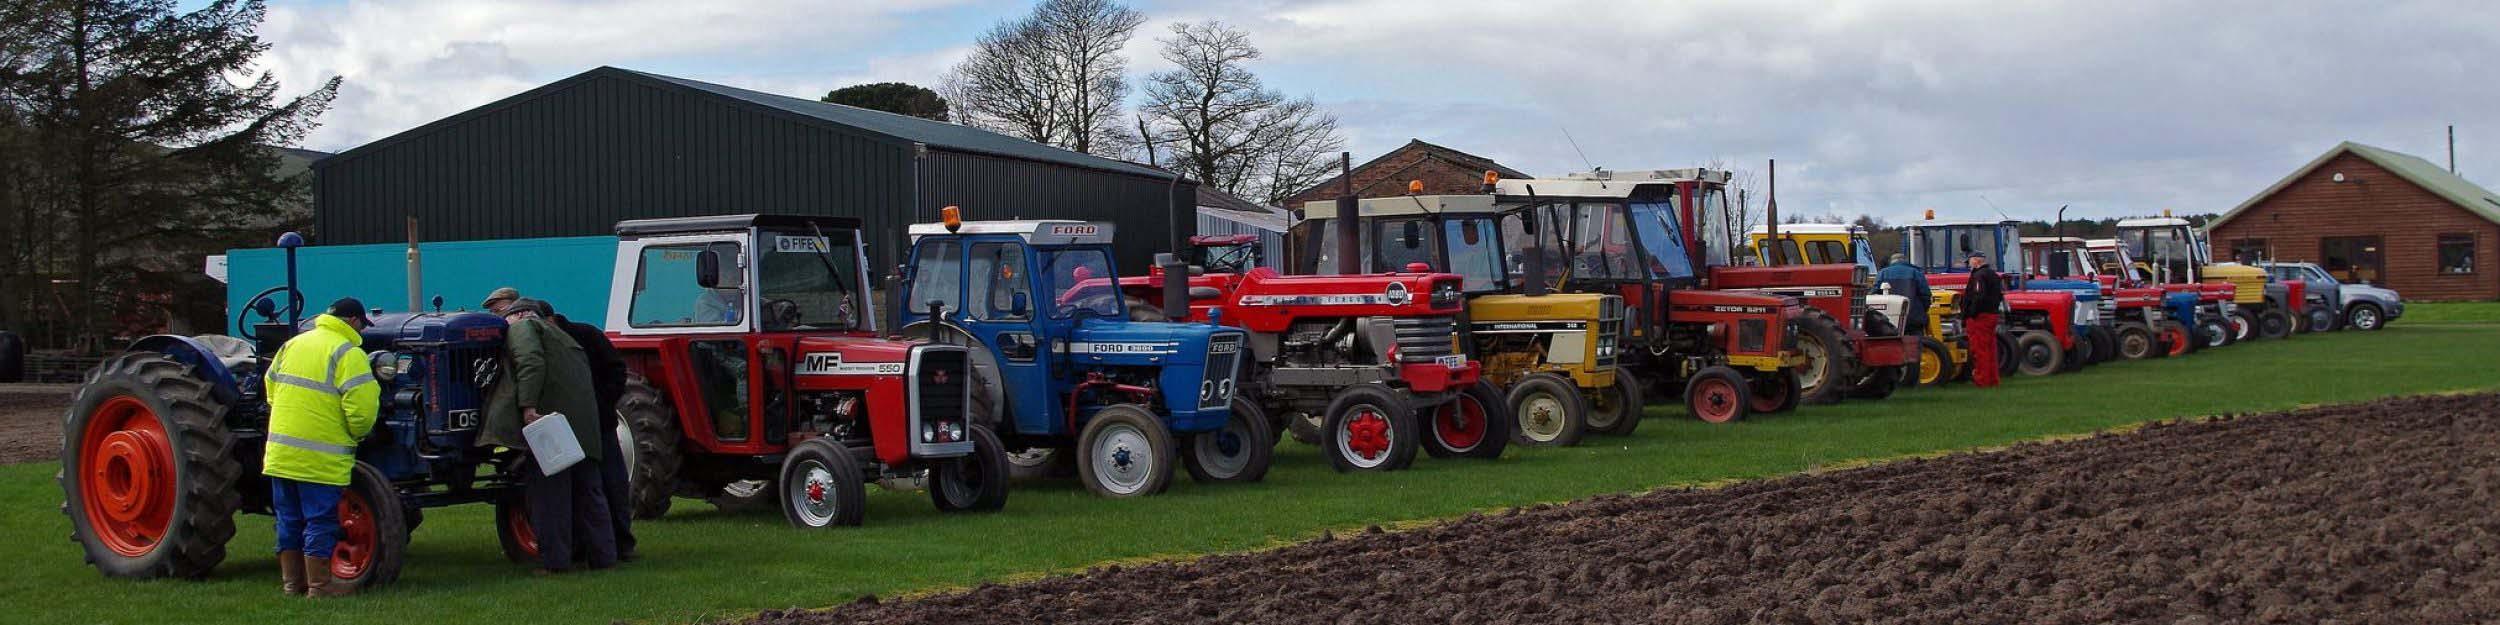 Fife Vintage Agricultural Machinery Club